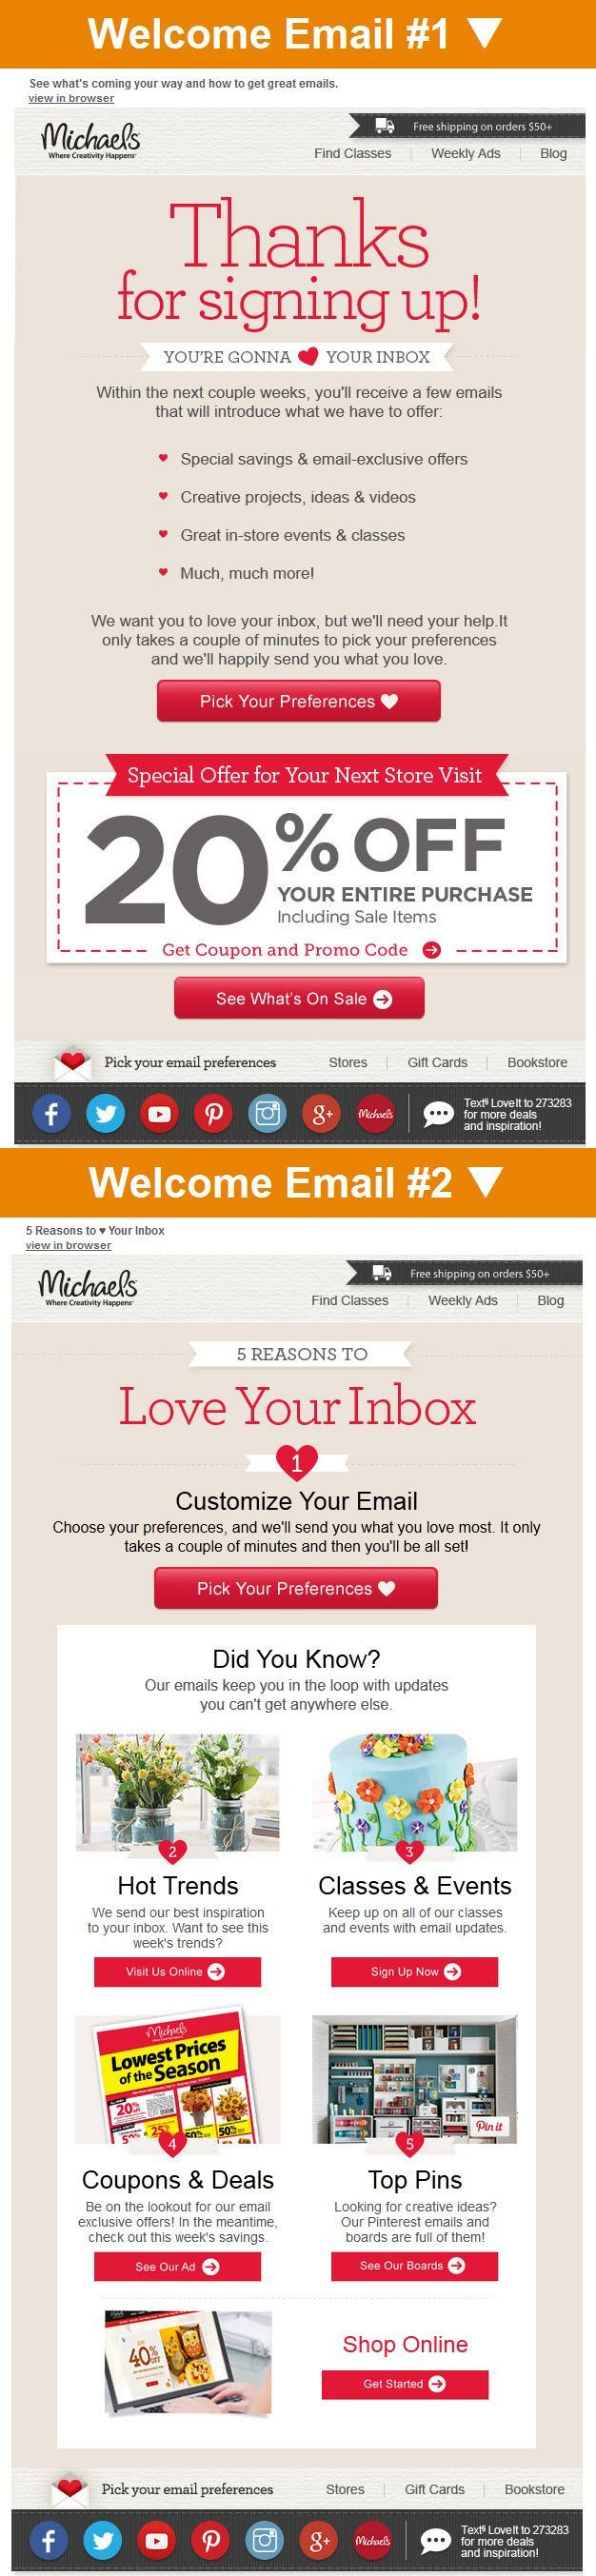 Michaels >> sent 5\/2014 >> Get Ready for Savings & Inspiration! >> Your Emails Have Perks - See Inside! >> This responsive 2-email welcome series puts heavy emphasis on setting expectations and collecting preferences. Michaels very clearly wants to create a positive transparent relationship from the beginning. The second email in the series also does a great job of engaging with great cross-channel calls-to-action. Midori Kudo Associate Designer Salesforce Marketing Cloud